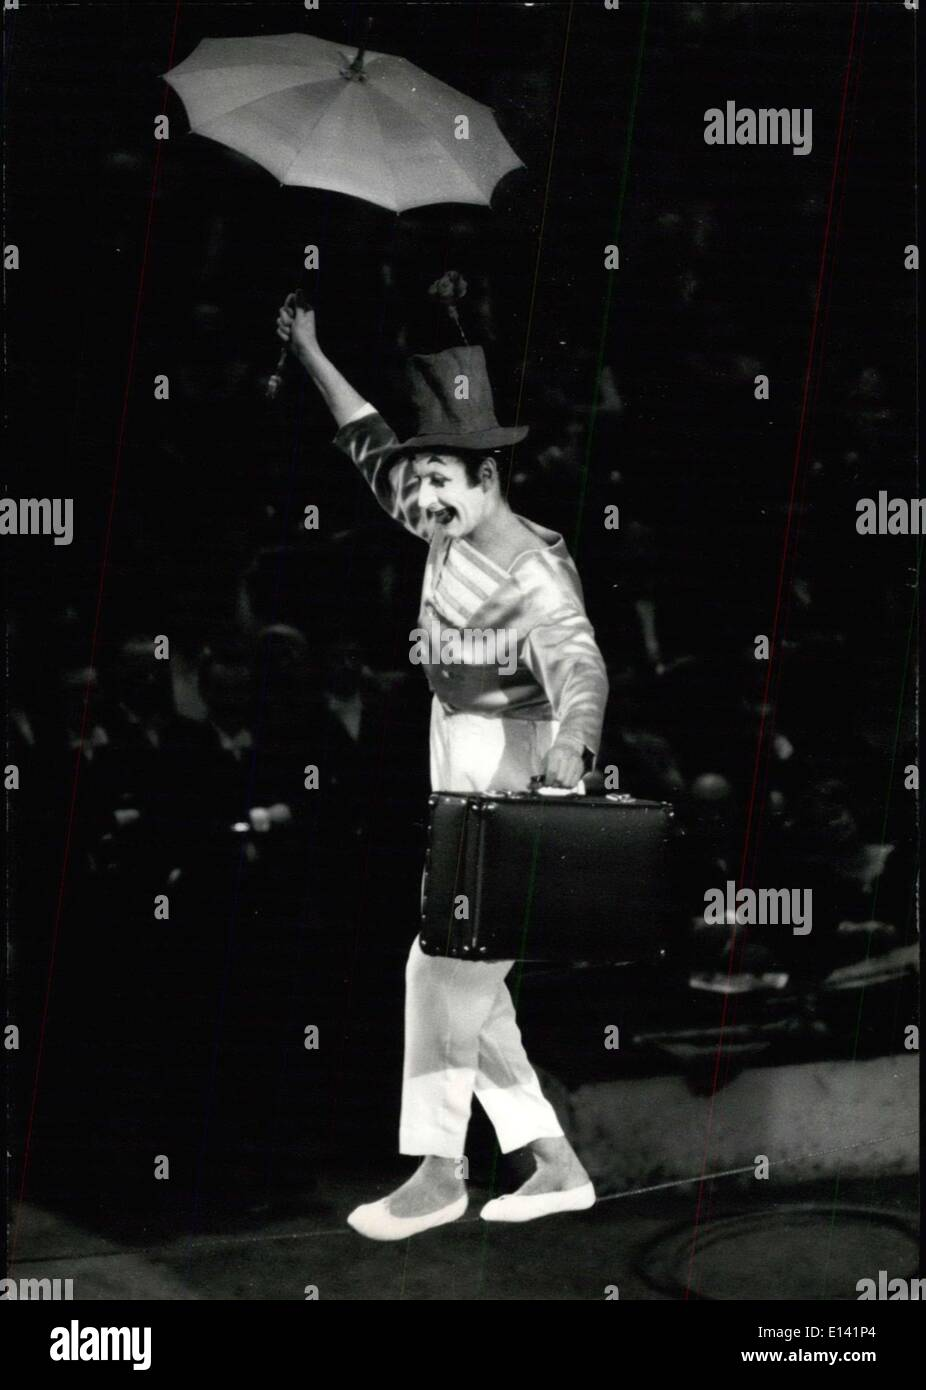 Mar. 31, 2012 - French Artist's Gala: The mime Marcel Marceau as a rope dancer: The annual French artist's Gala ws held last night at the Win Circus in Paris. 38 French stars were performing. Photo shows the famous French Mime Marcel Marceau showing his extraordinary agility as a tight rope walker. - Stock Image